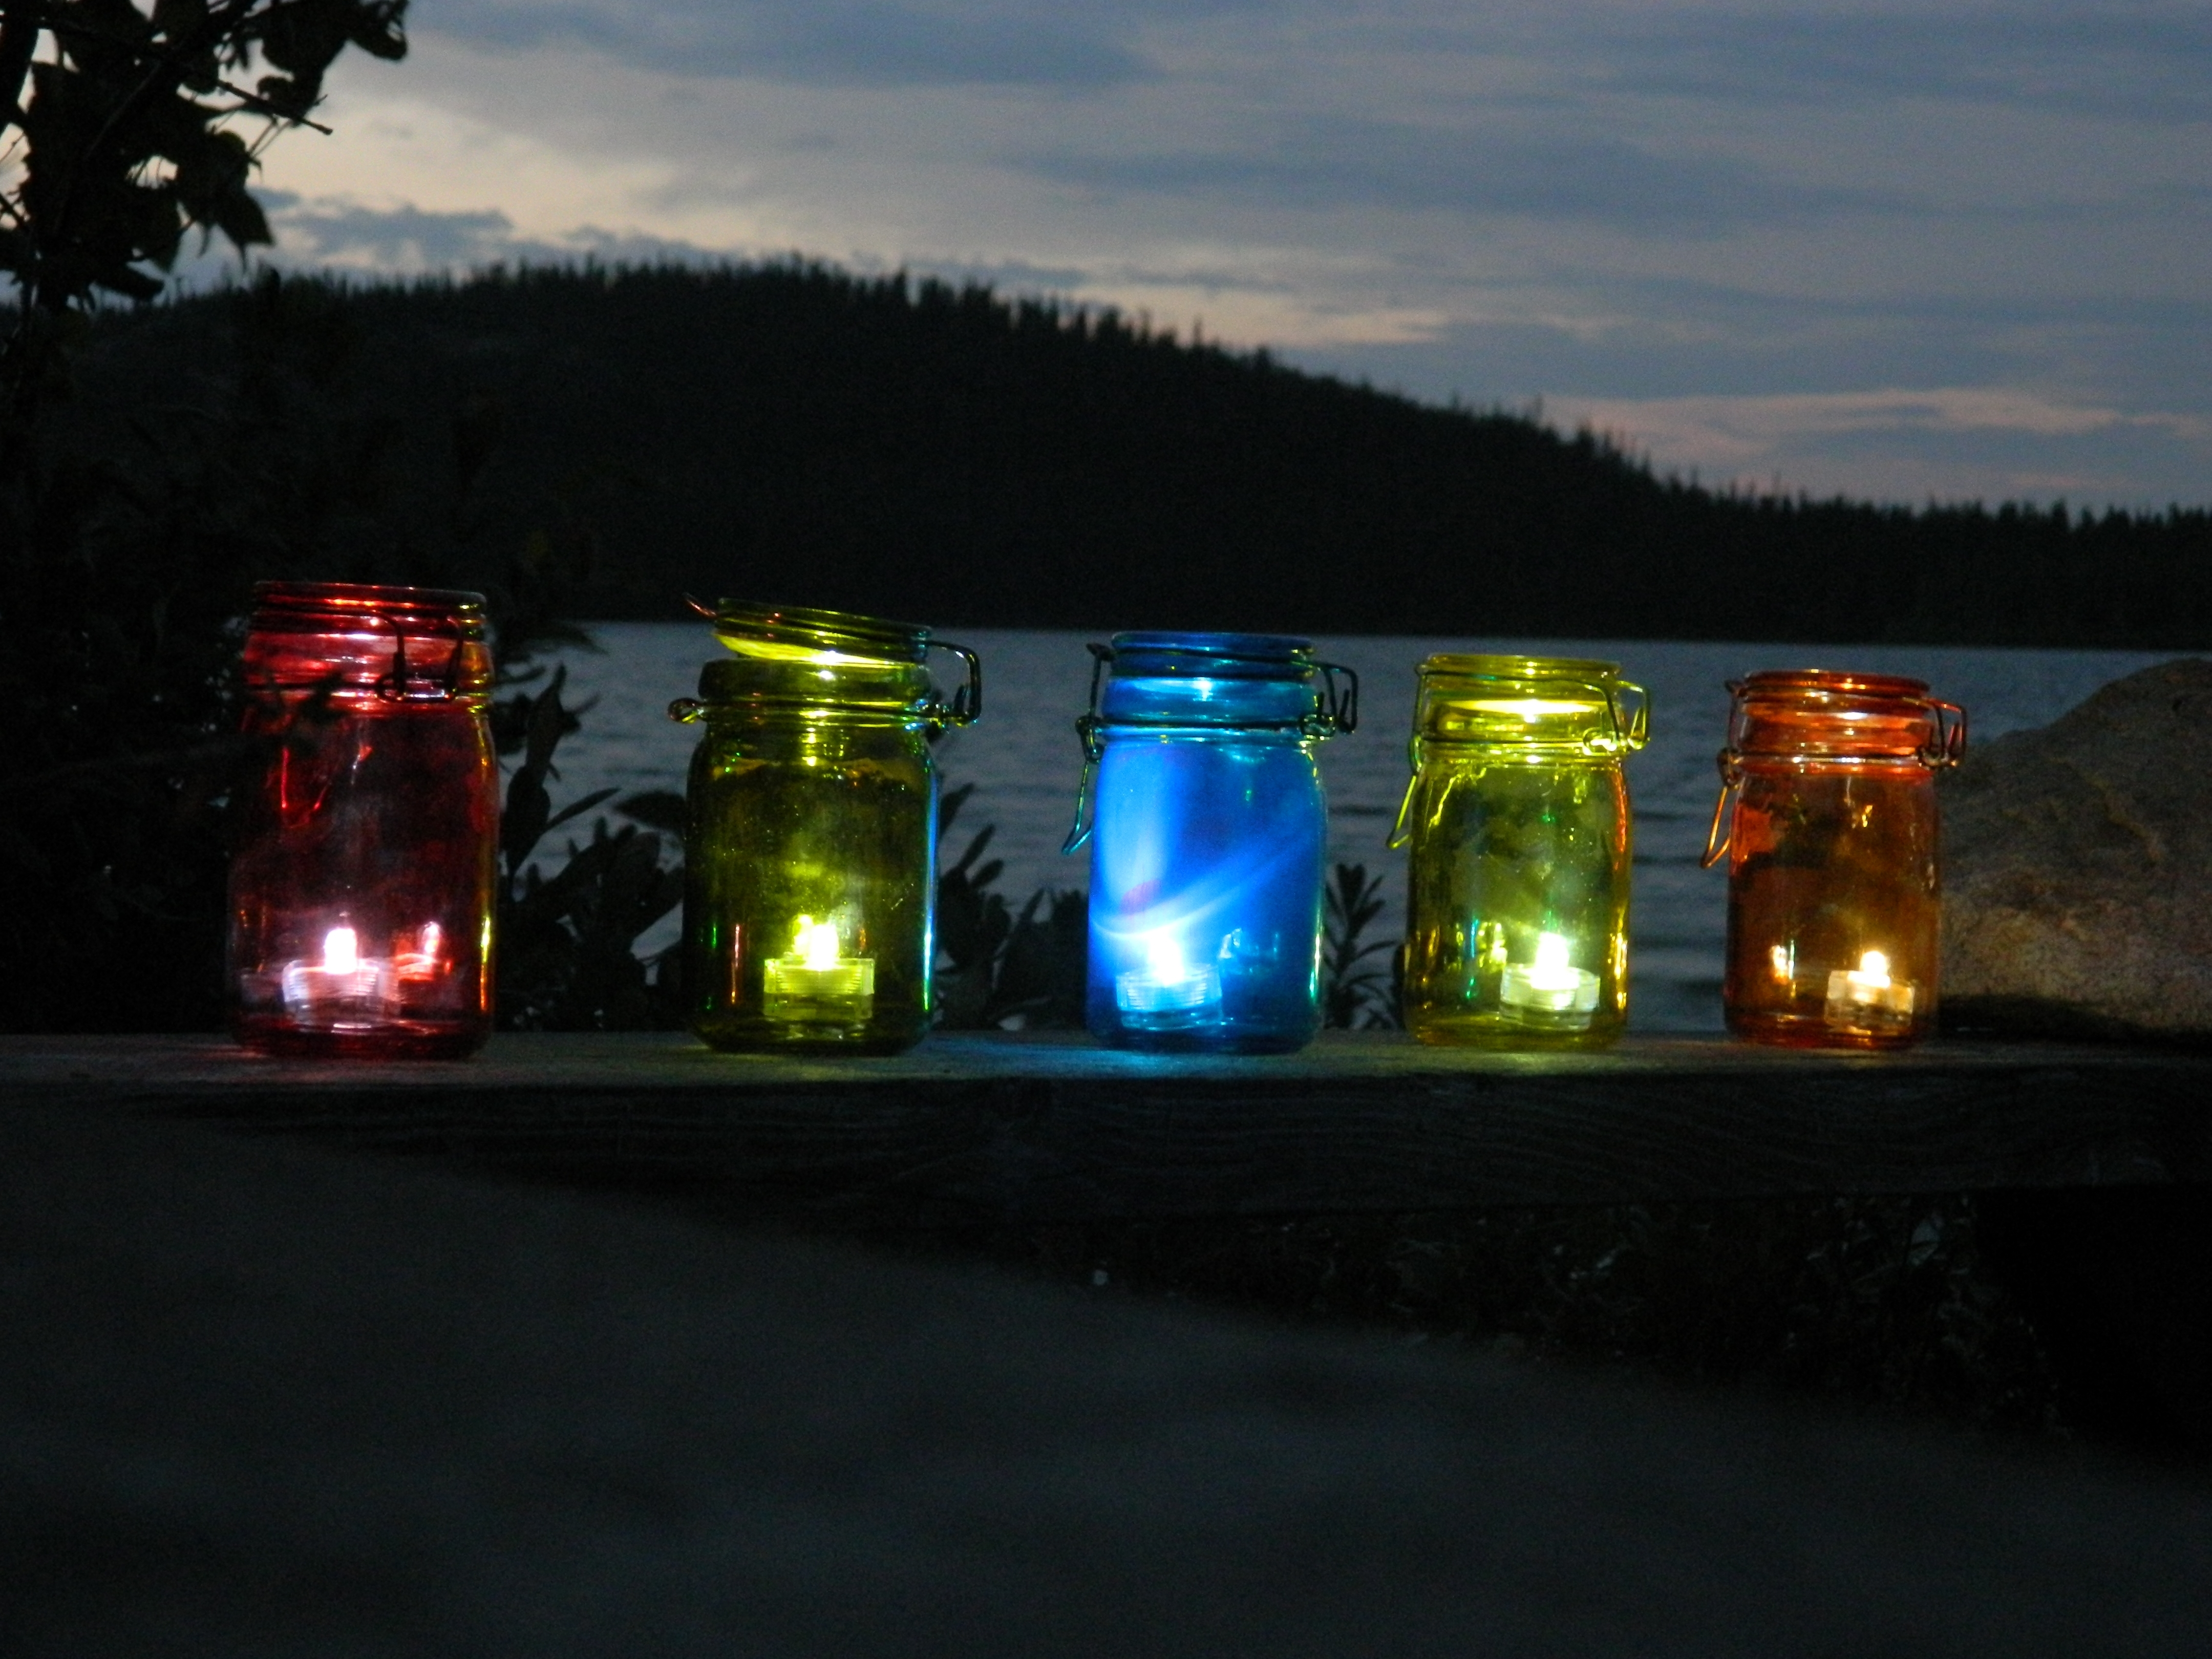 A Little Bit Of Glass Pertaining To Outdoor Tea Light Lanterns (View 4 of 20)